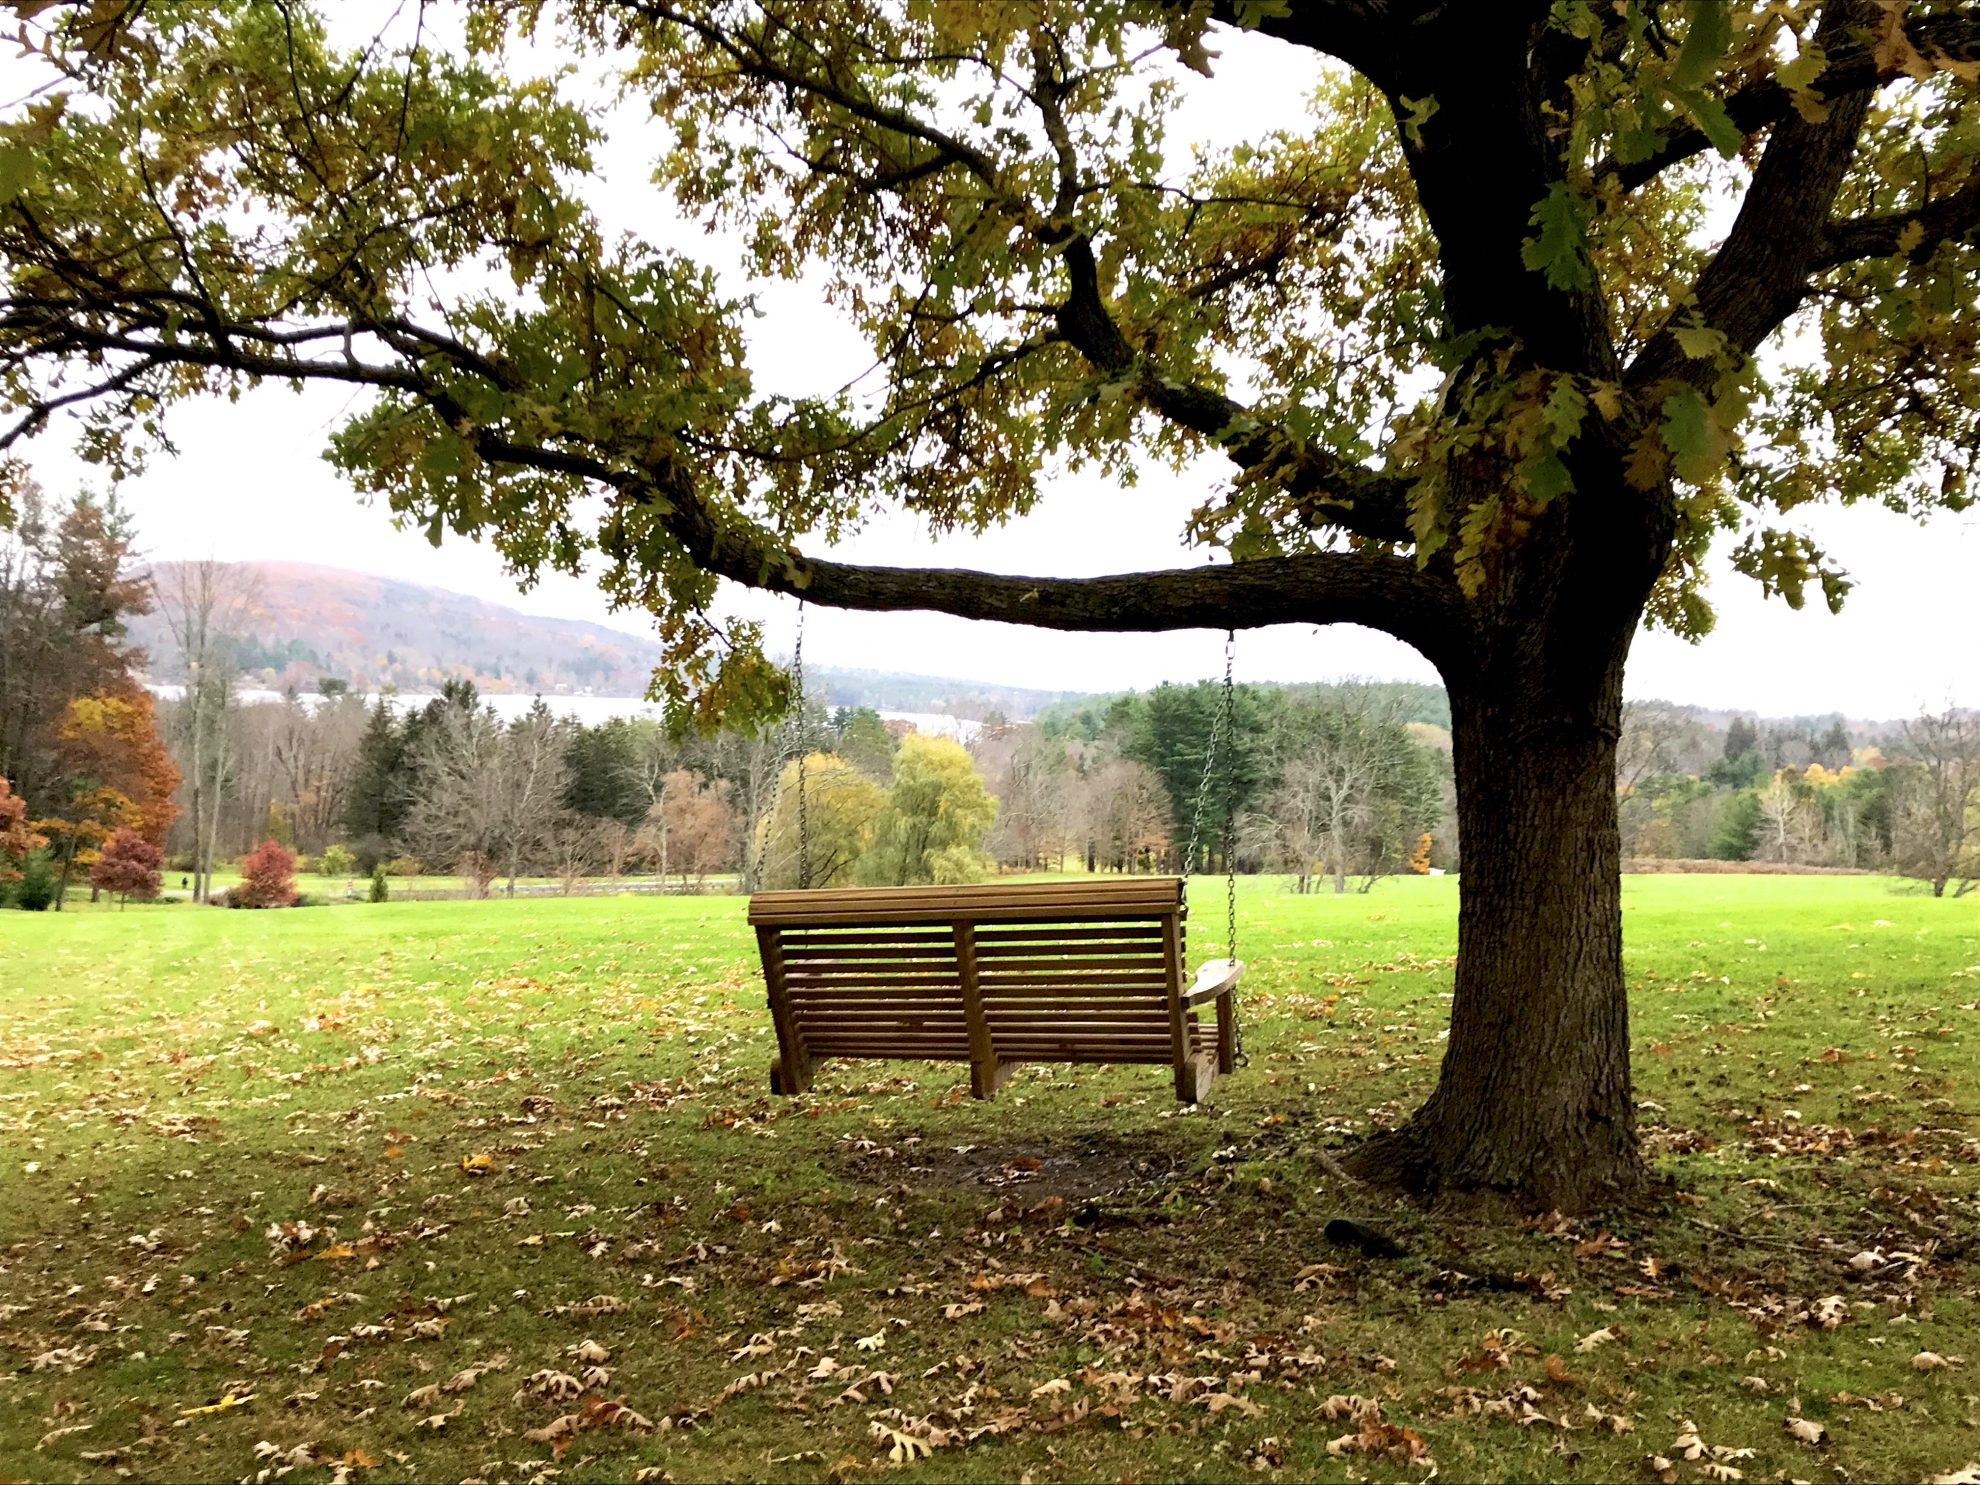 Serene tree swing overlooking the gorgeous and colorful view at Kripalu Center for Yoga and Health